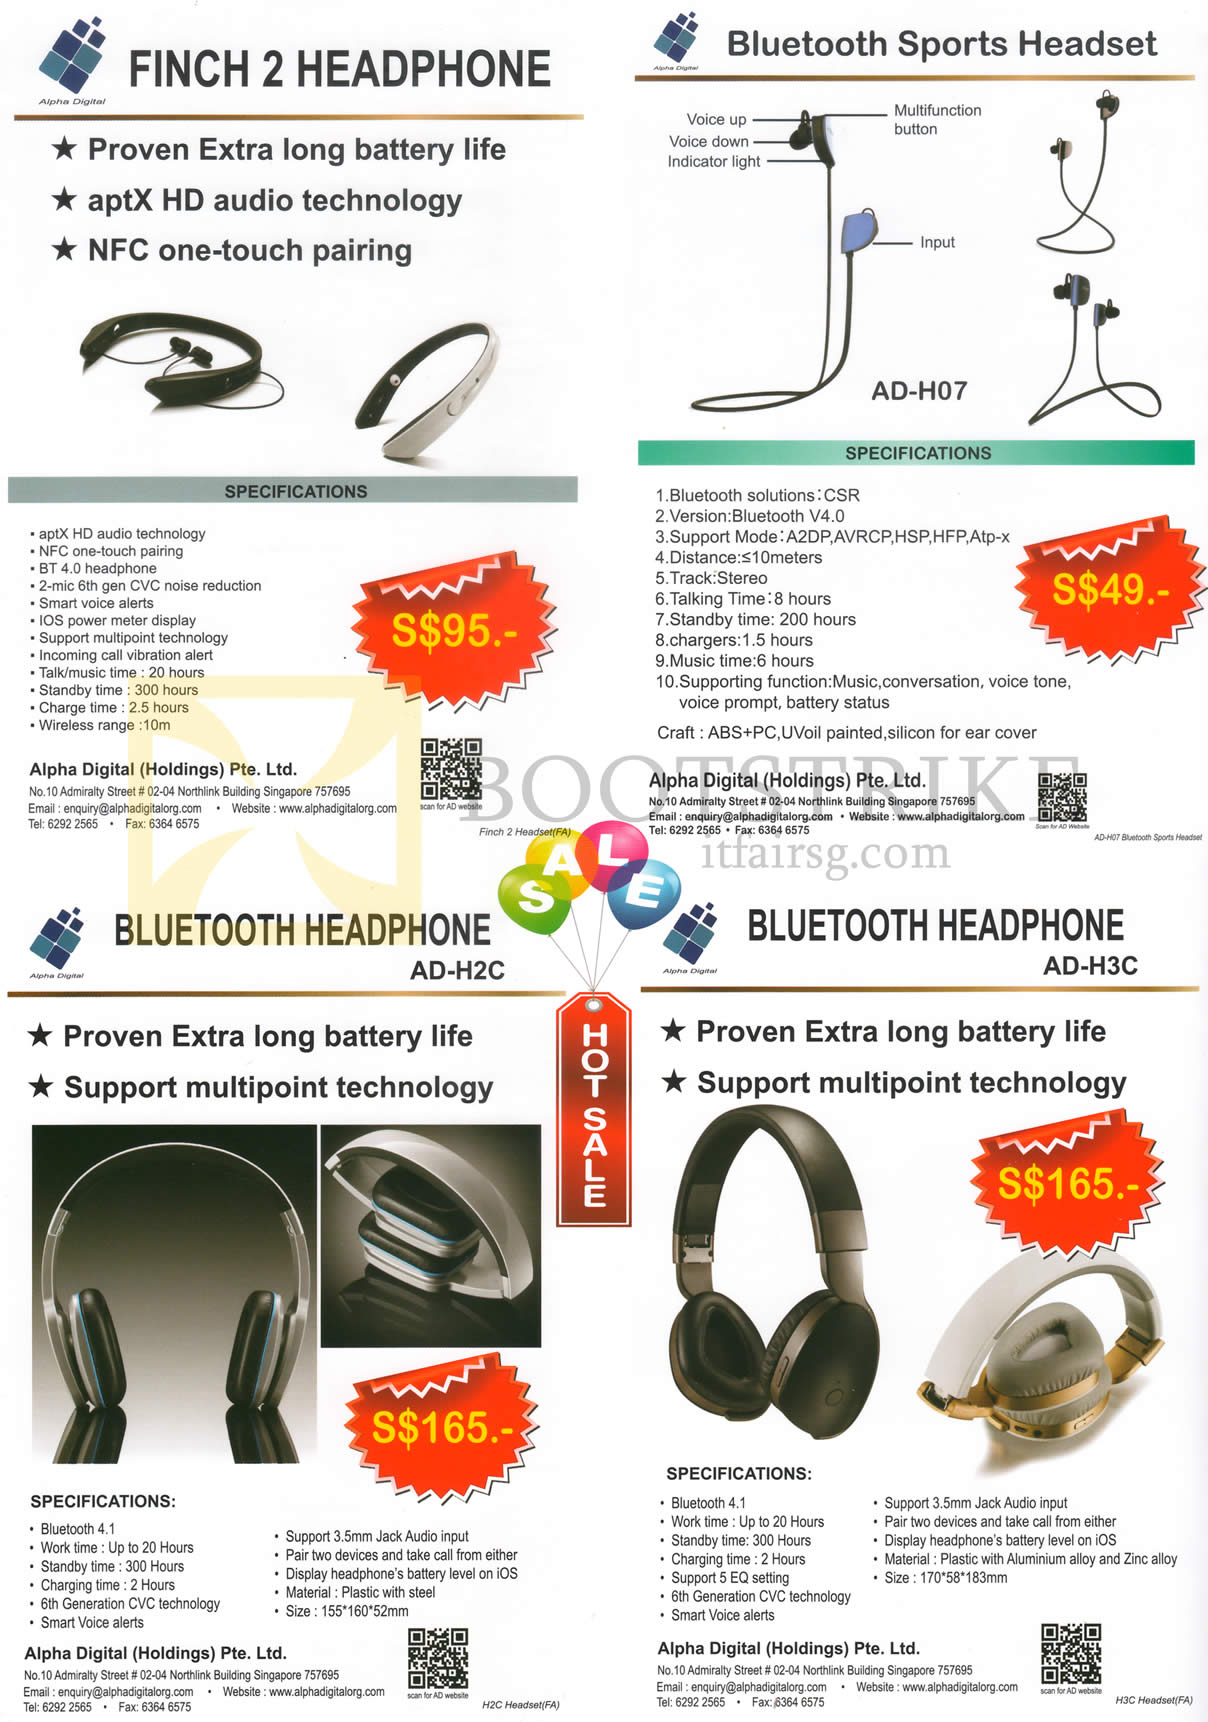 COMEX 2016 price list image brochure of Alpha Digital Headphones Finch 2, Bluetooth Sports Headset, AD-H2C, H3C